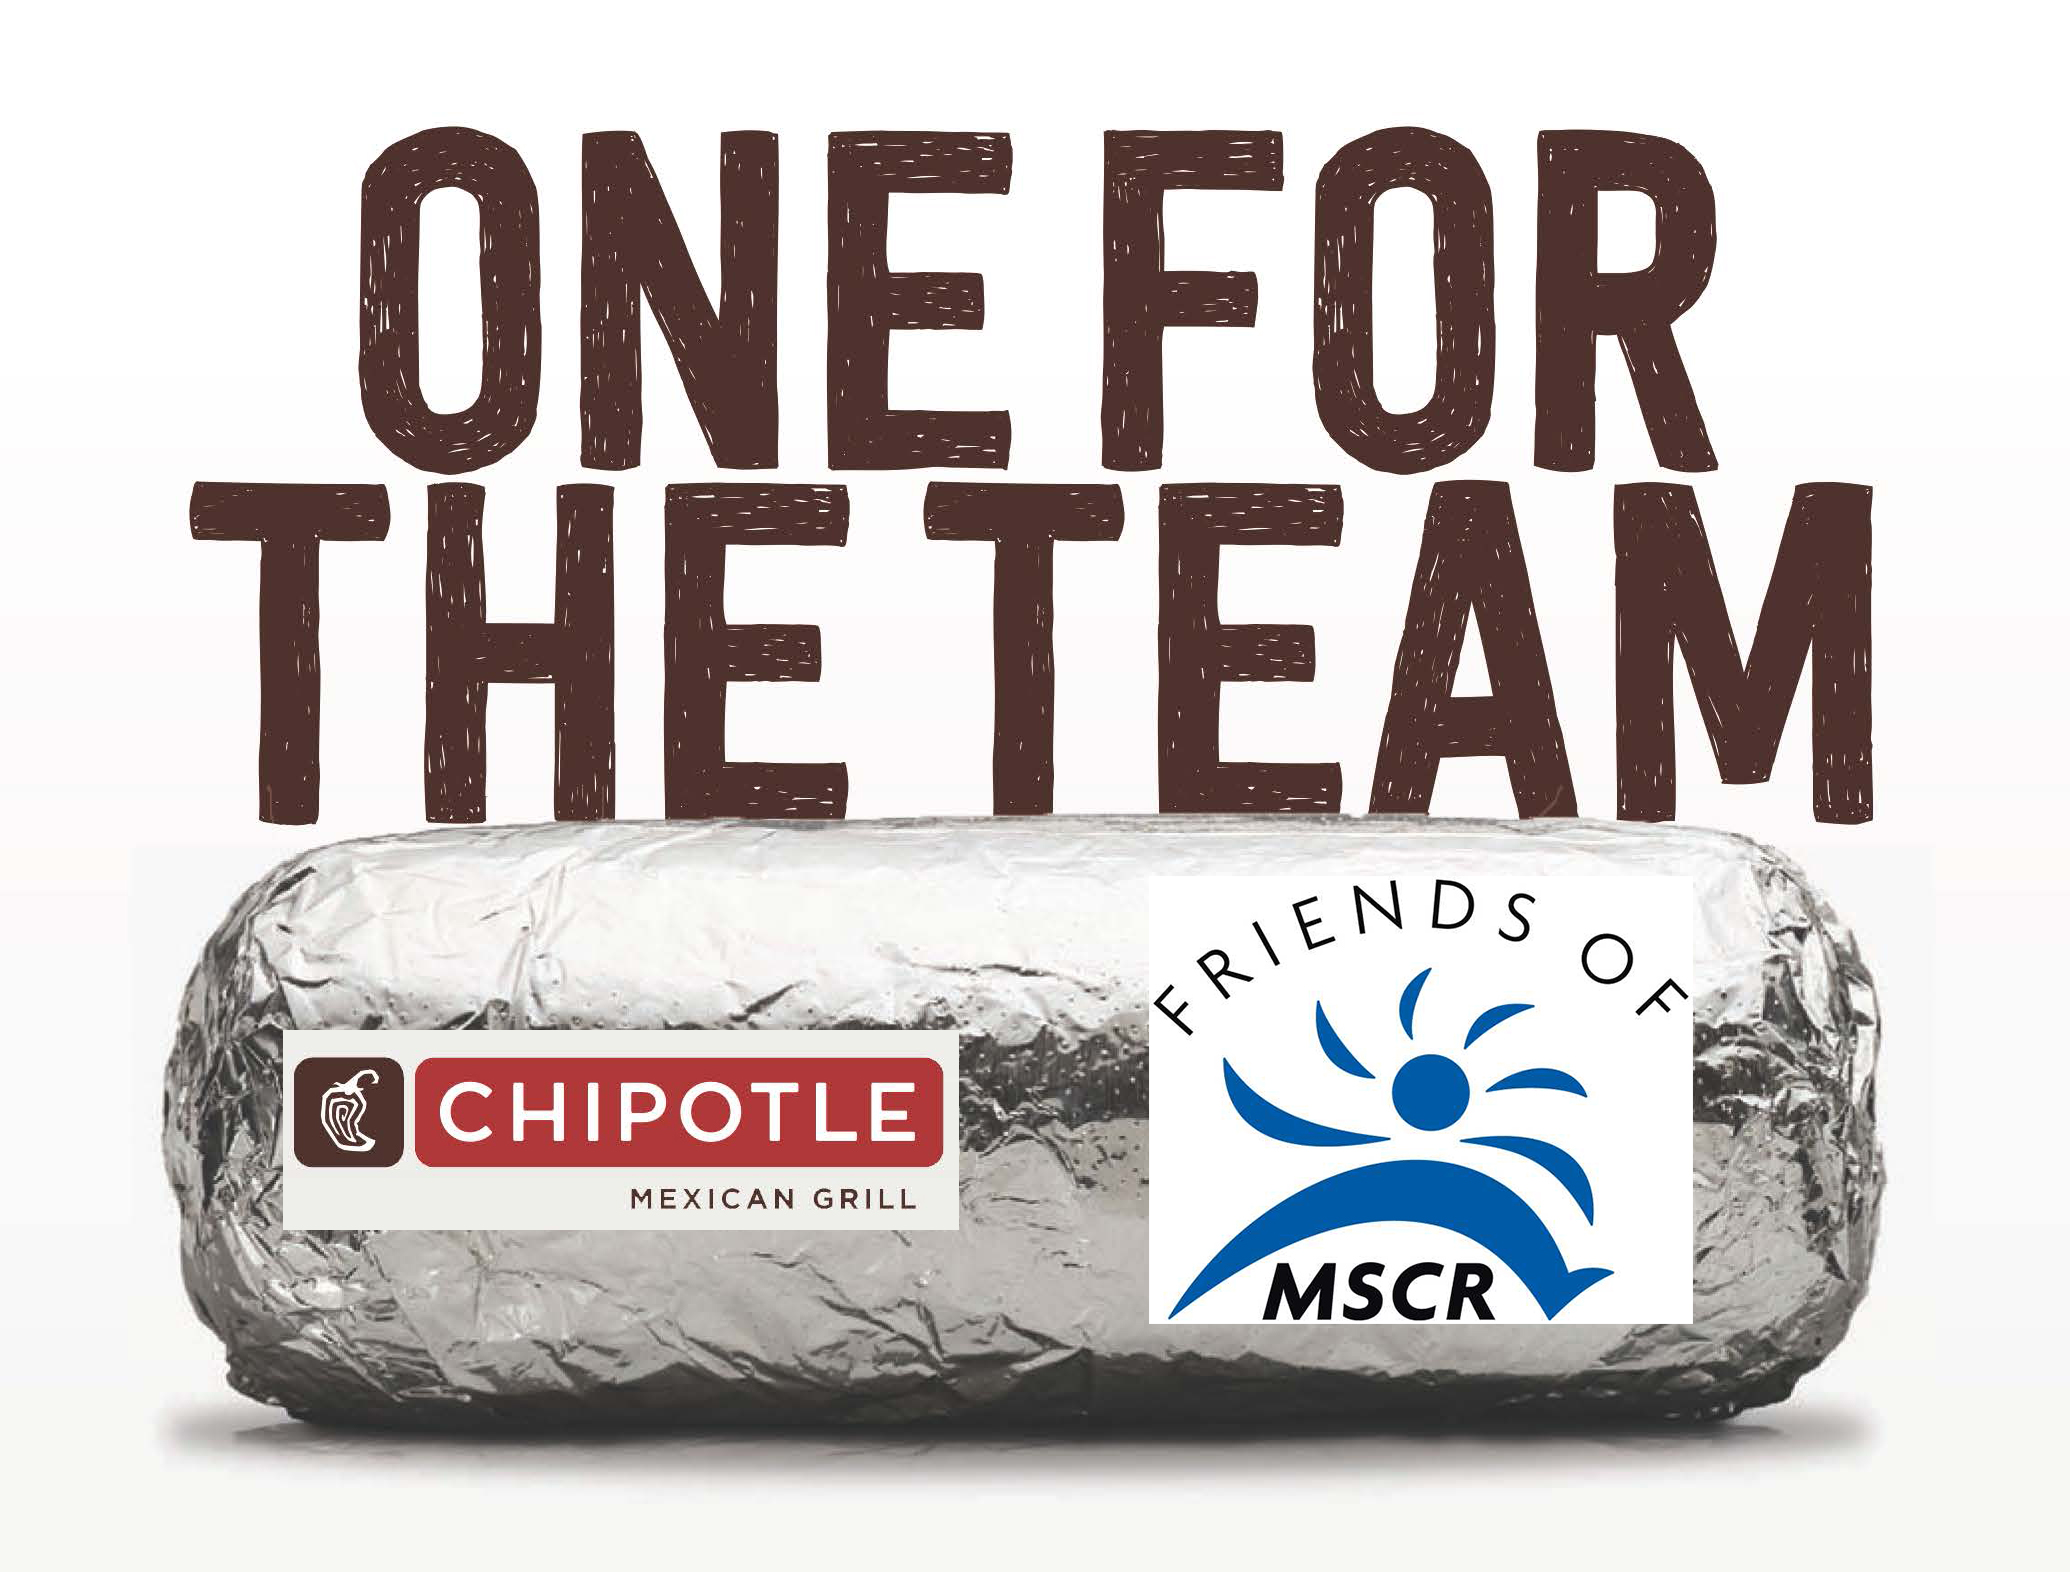 picture of Chipotle logo and Friends of MSCR logo